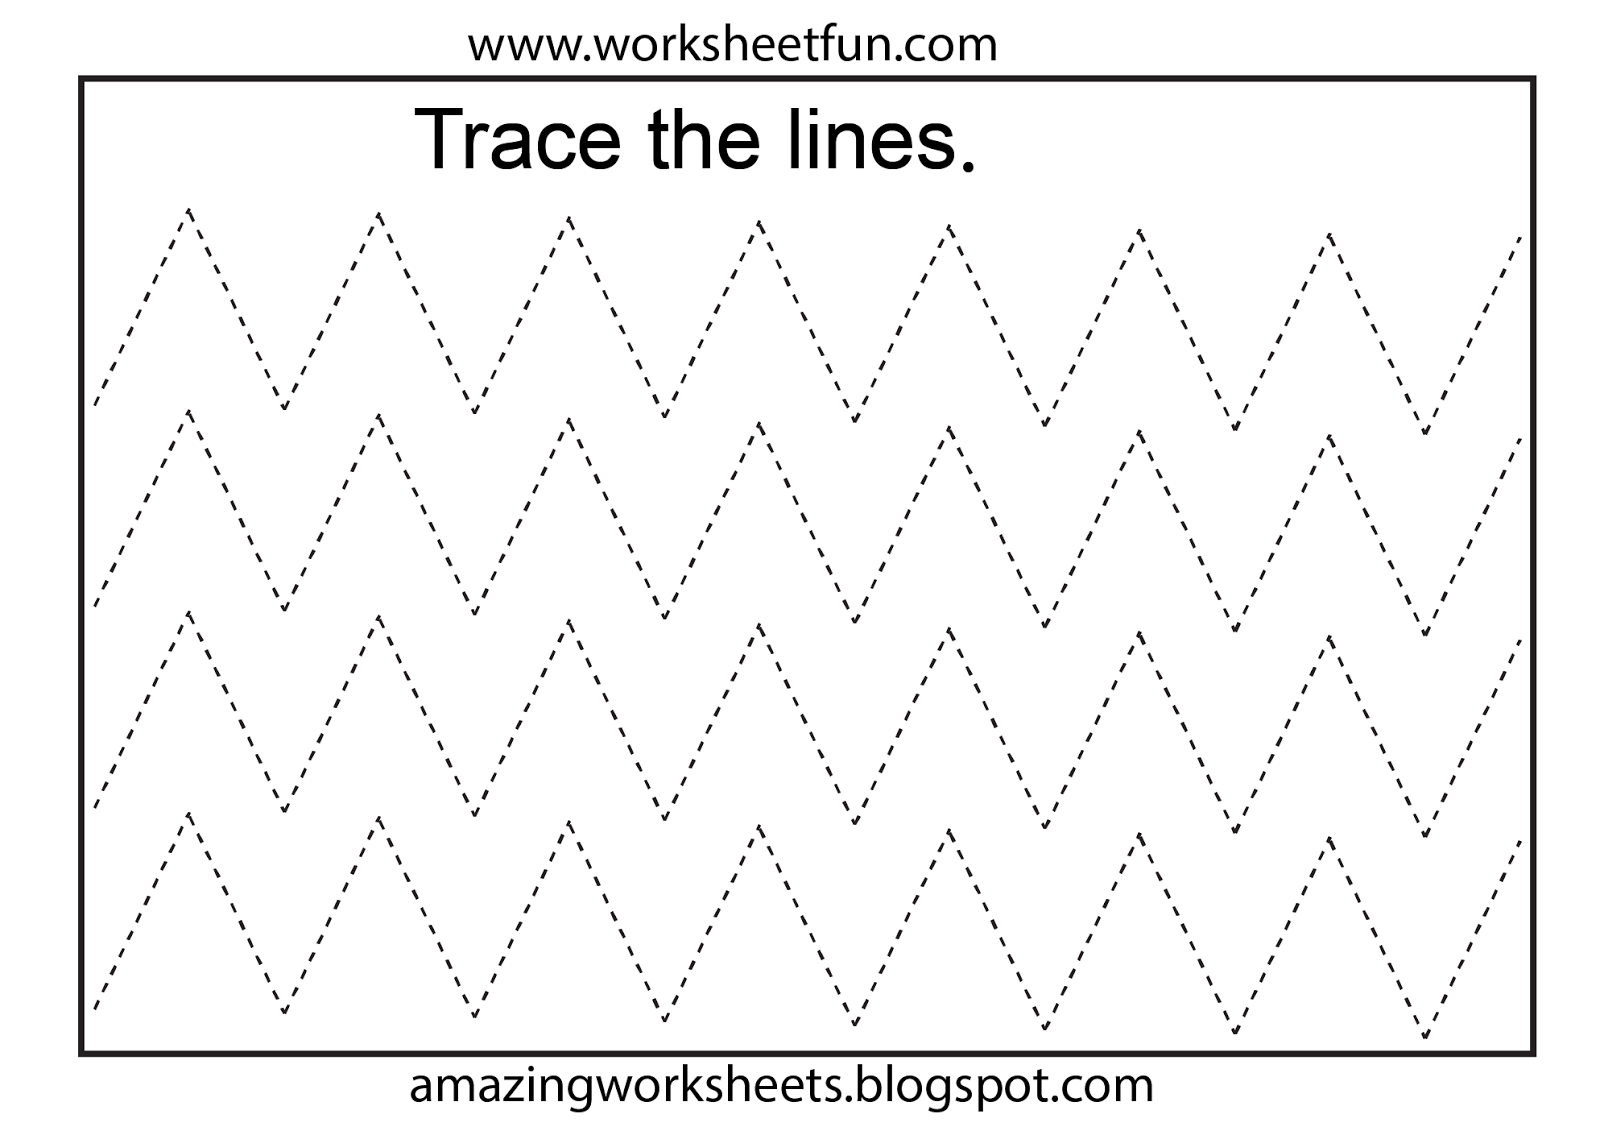 Worksheet Tracing Printable Worksheets 1000 images about home school on pinterest tracing worksheets free printable and preschool worksheets